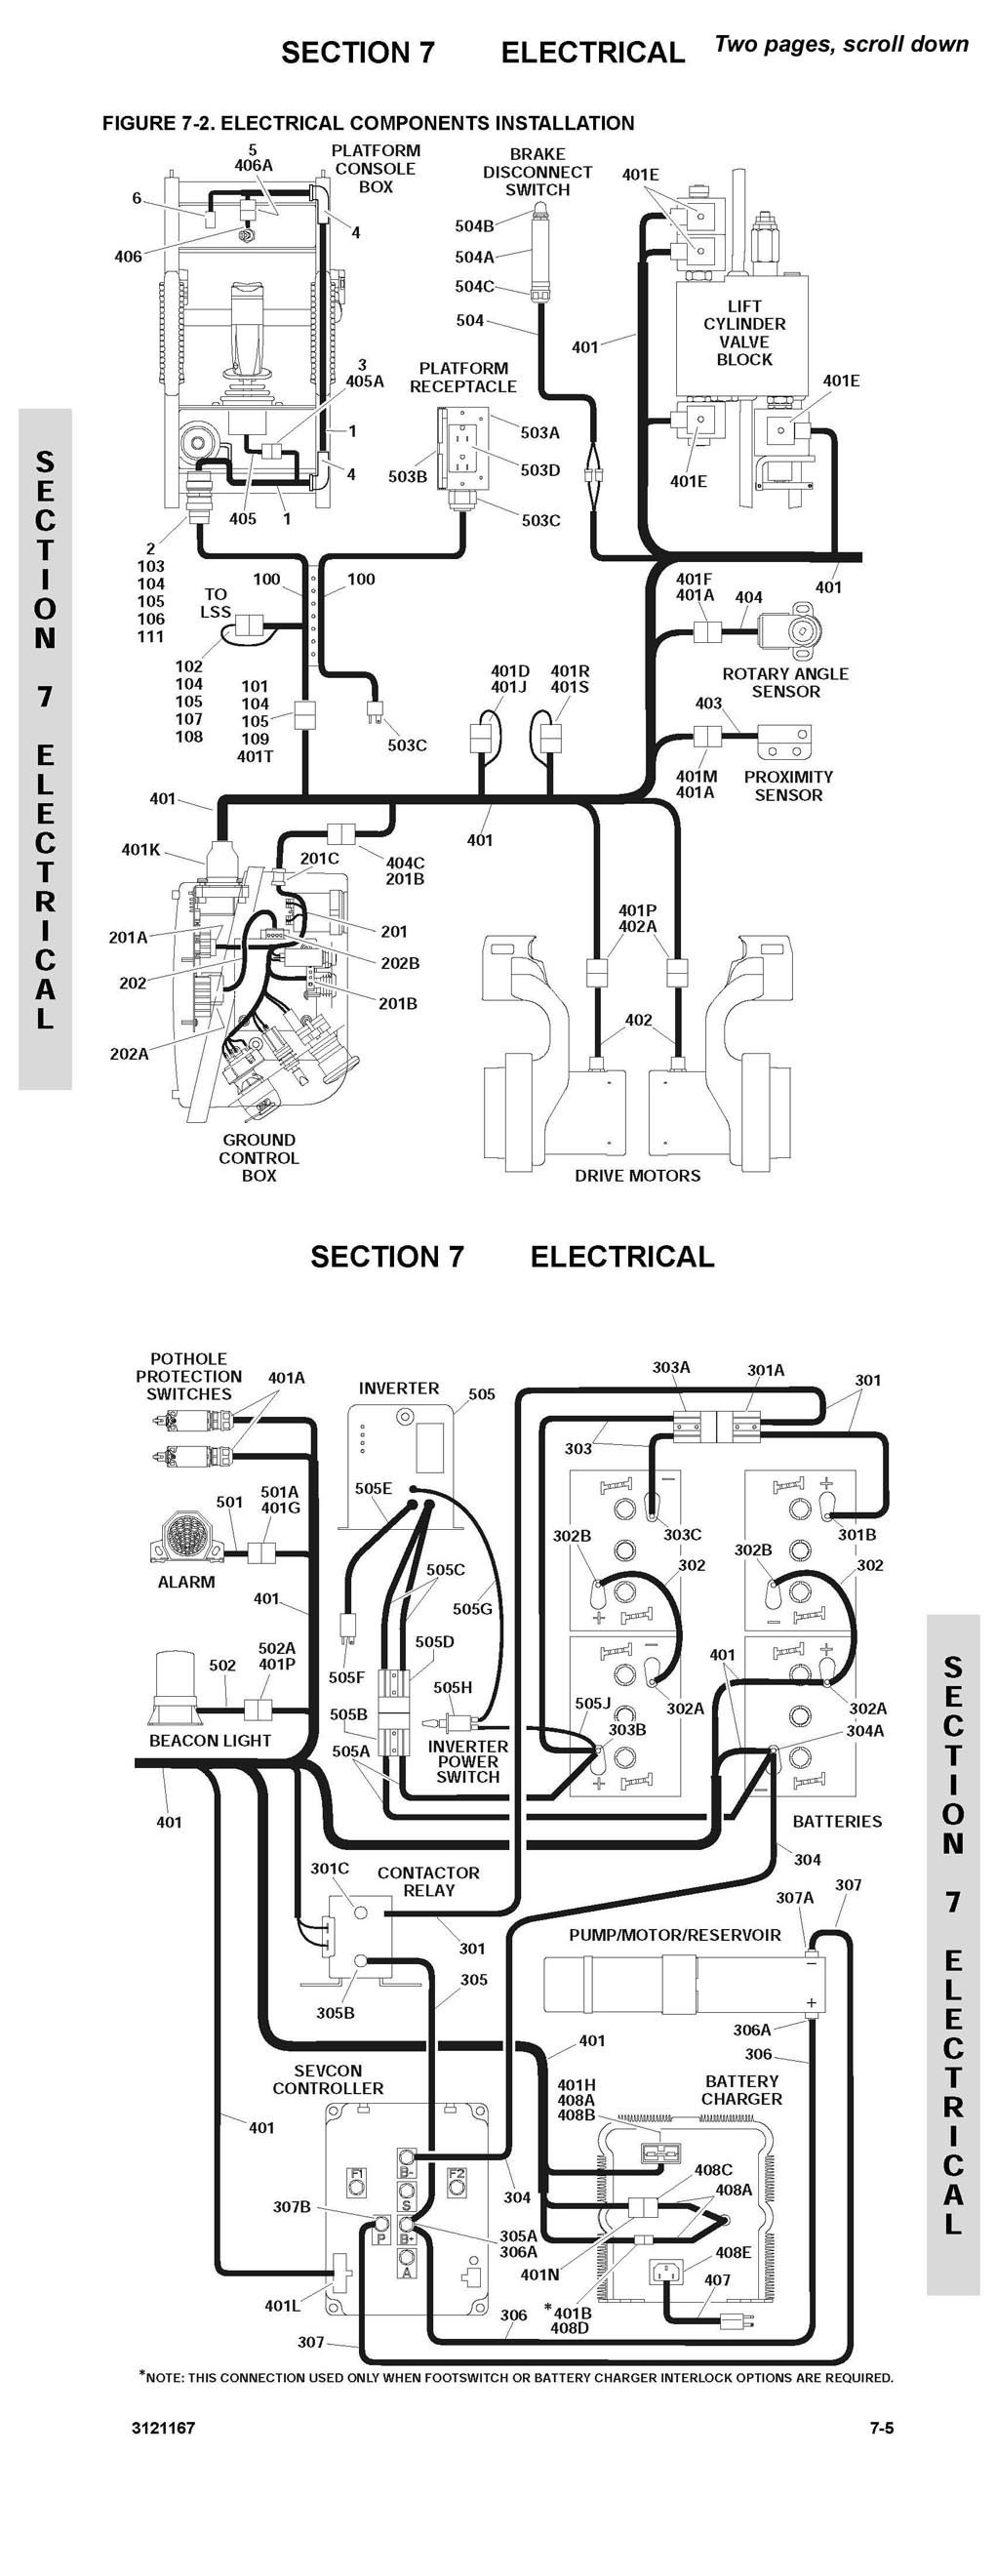 Jlg 20mvl Wiring Diagram Explained Wiring Diagrams Wiring Schematics For  Cimmarron Bass Boat Sullair Wiring Schematics